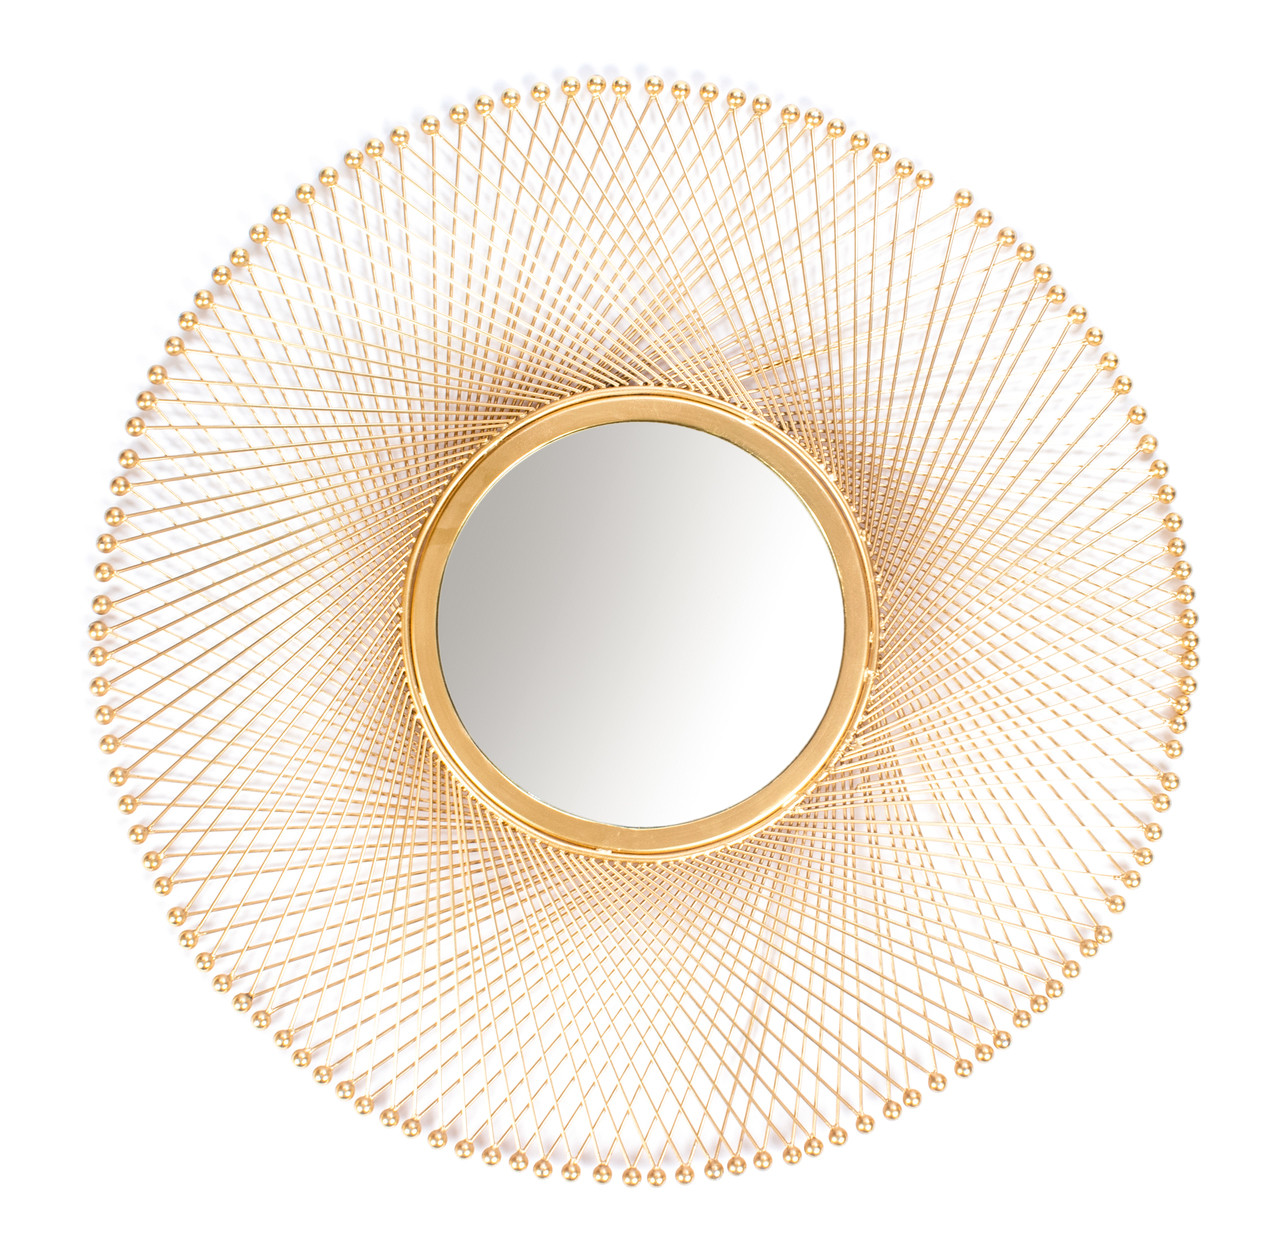 Red Fig Home Wall Mirror Decor Decorative Handcrafted Gold Metal Wire Frame Small Round Mounted Mirror For Hallway Bedroom Bathroom Living Room Red Fig Home